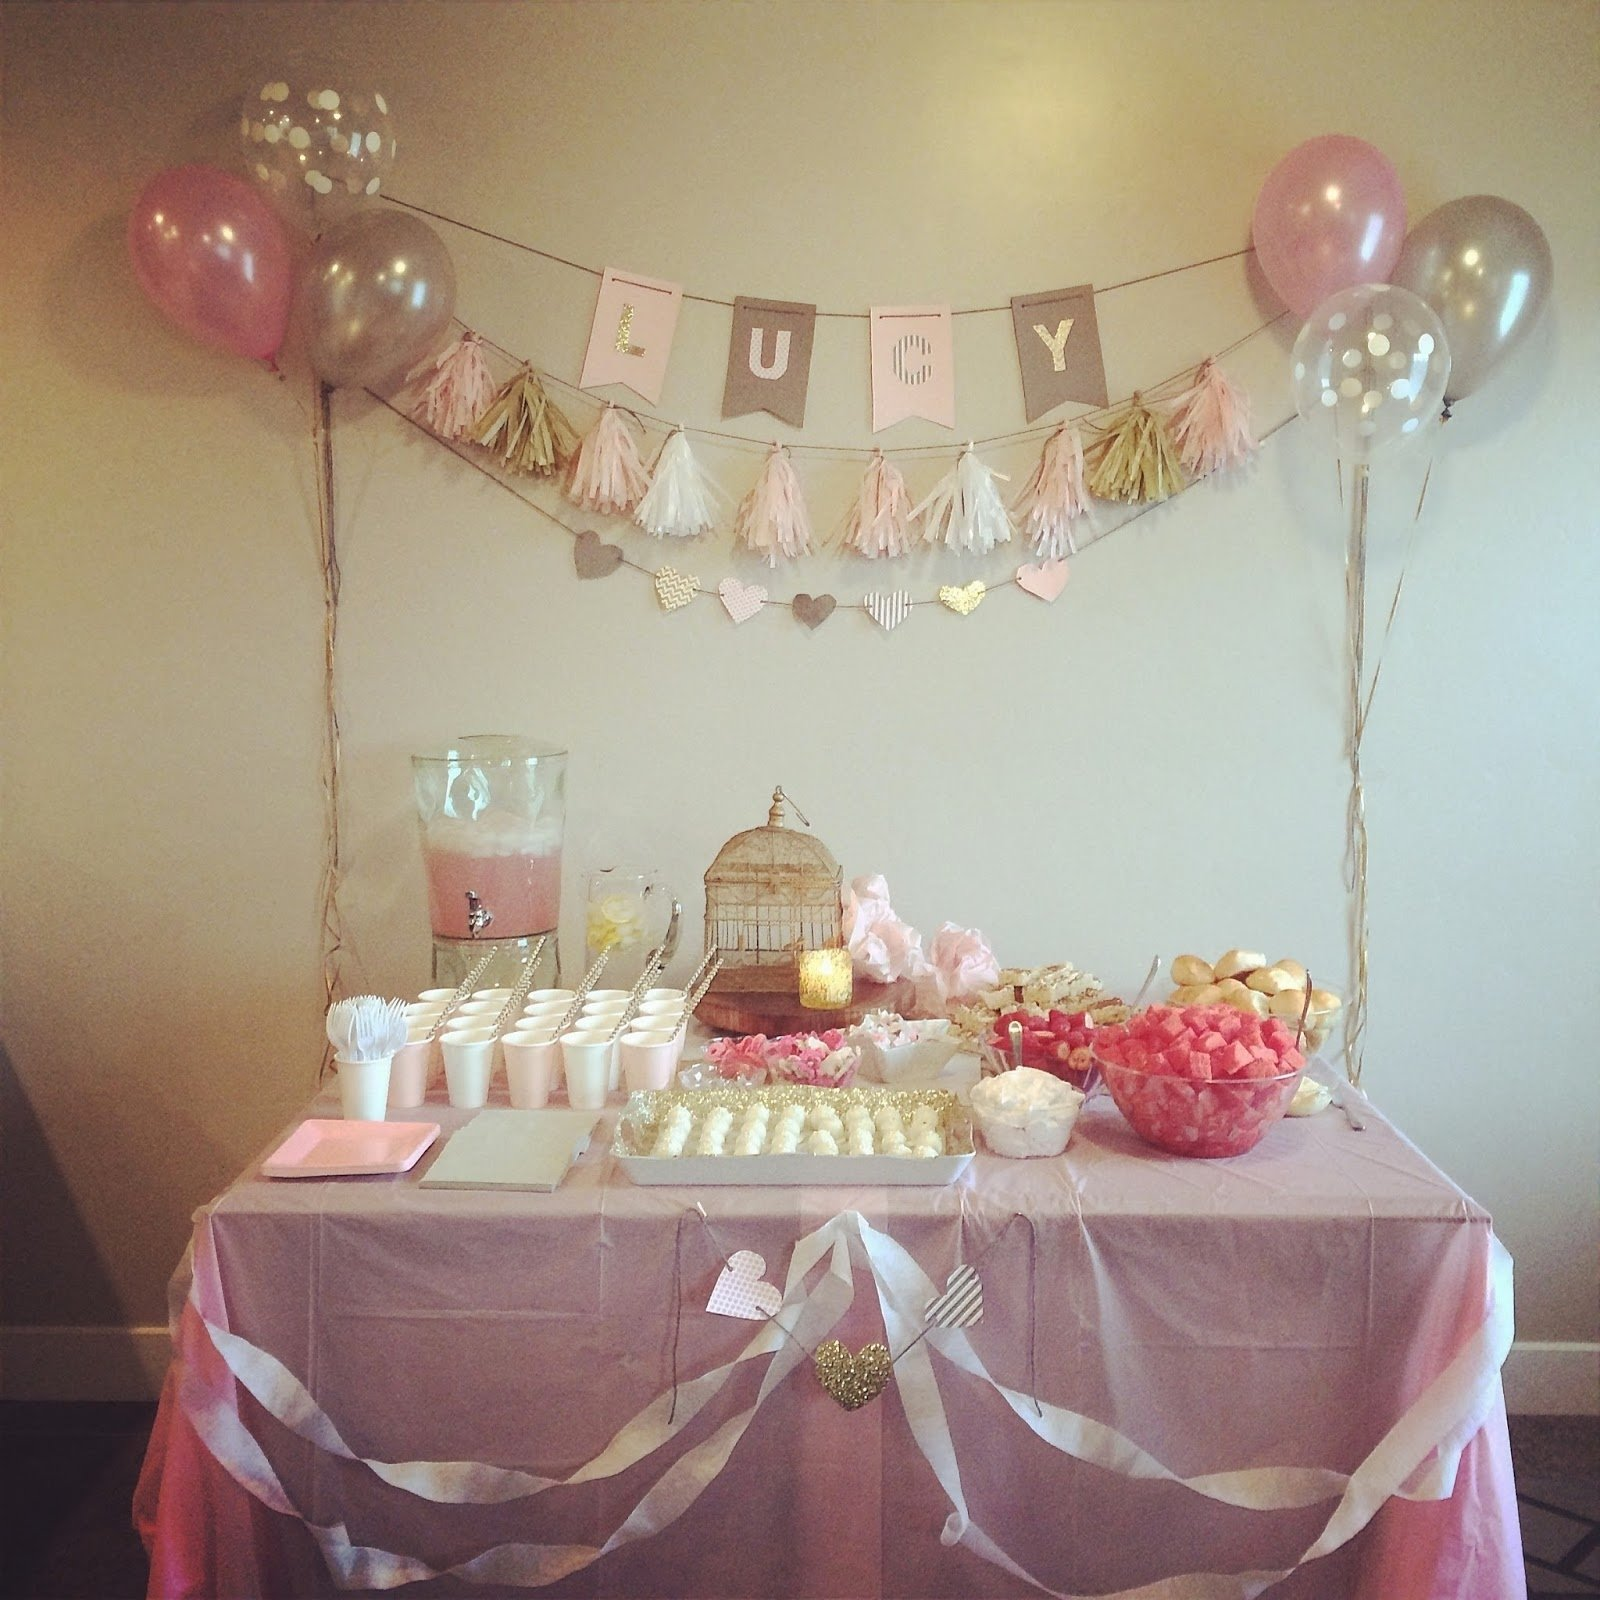 baby shower on budget- how to throw a baby shower for under $80